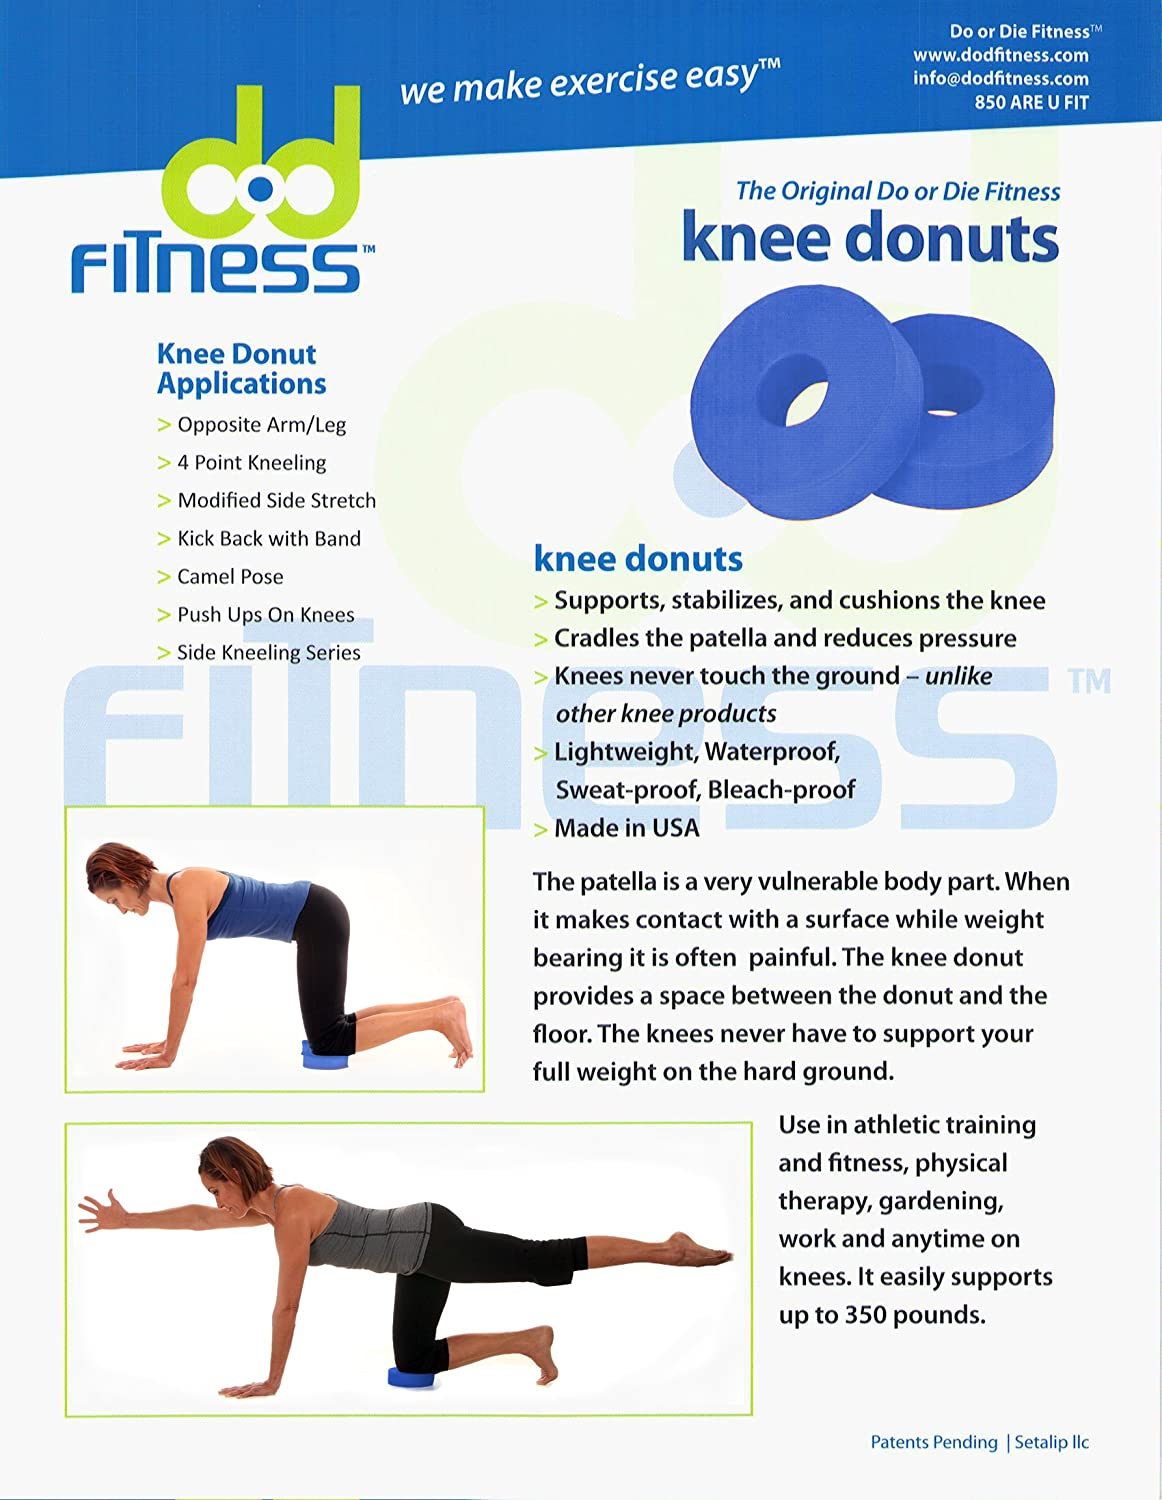 Amazon.com : dod fitness Knee Donuts: support and cushion your knees ...